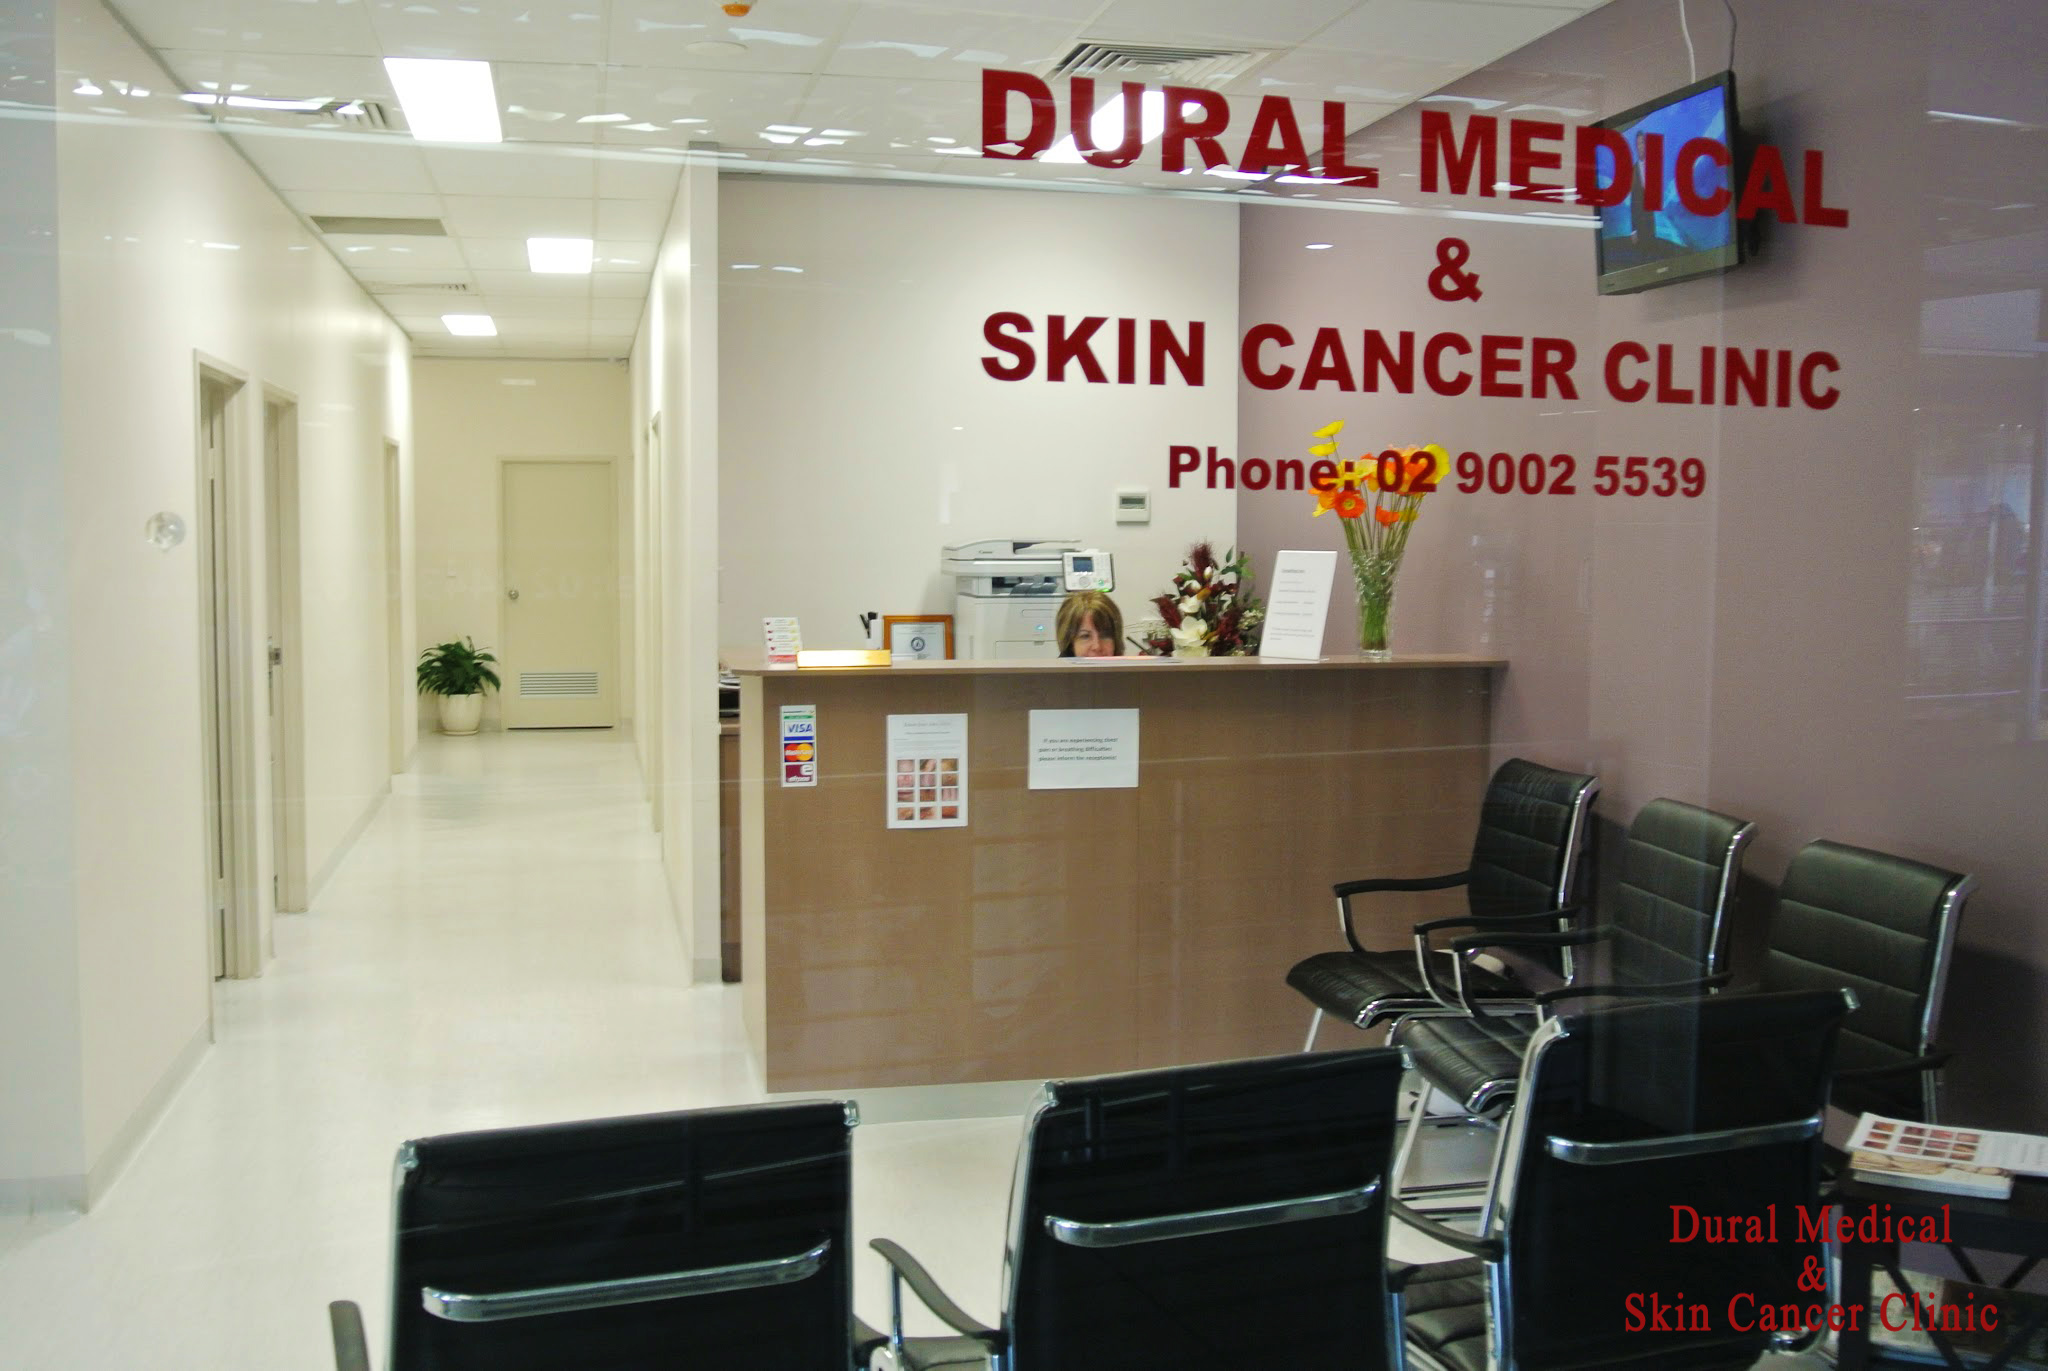 Dural Medical & Skin Cancer Clinic second image